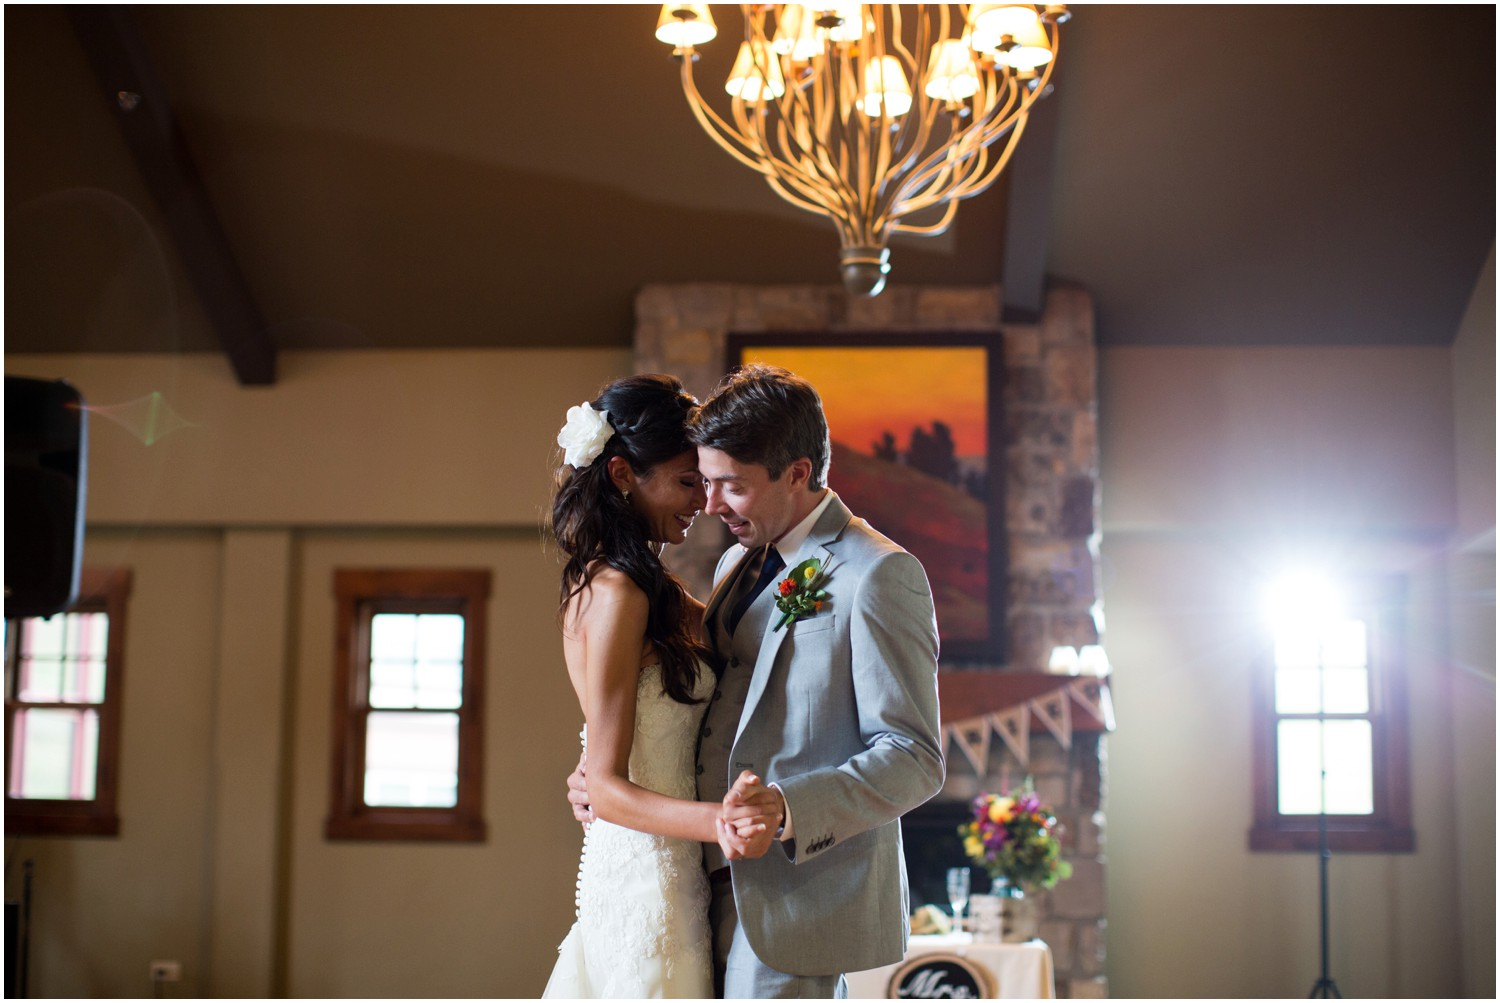 778-Granby-ranch-summer-wedding-photography-Ross.jpg